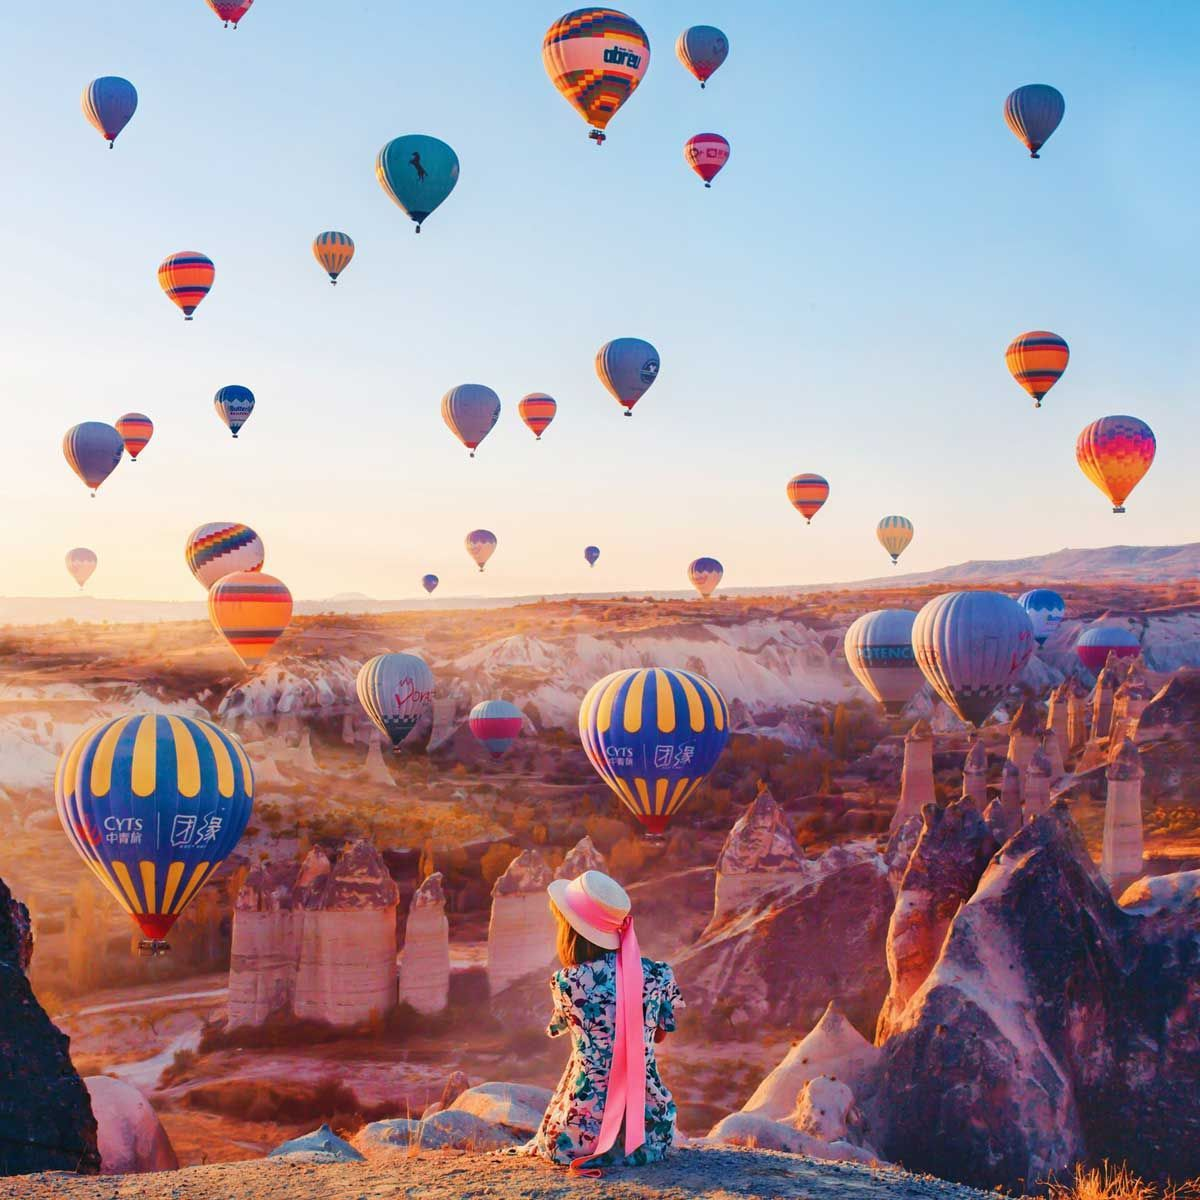 Turkey from the skies Magical images of hot air